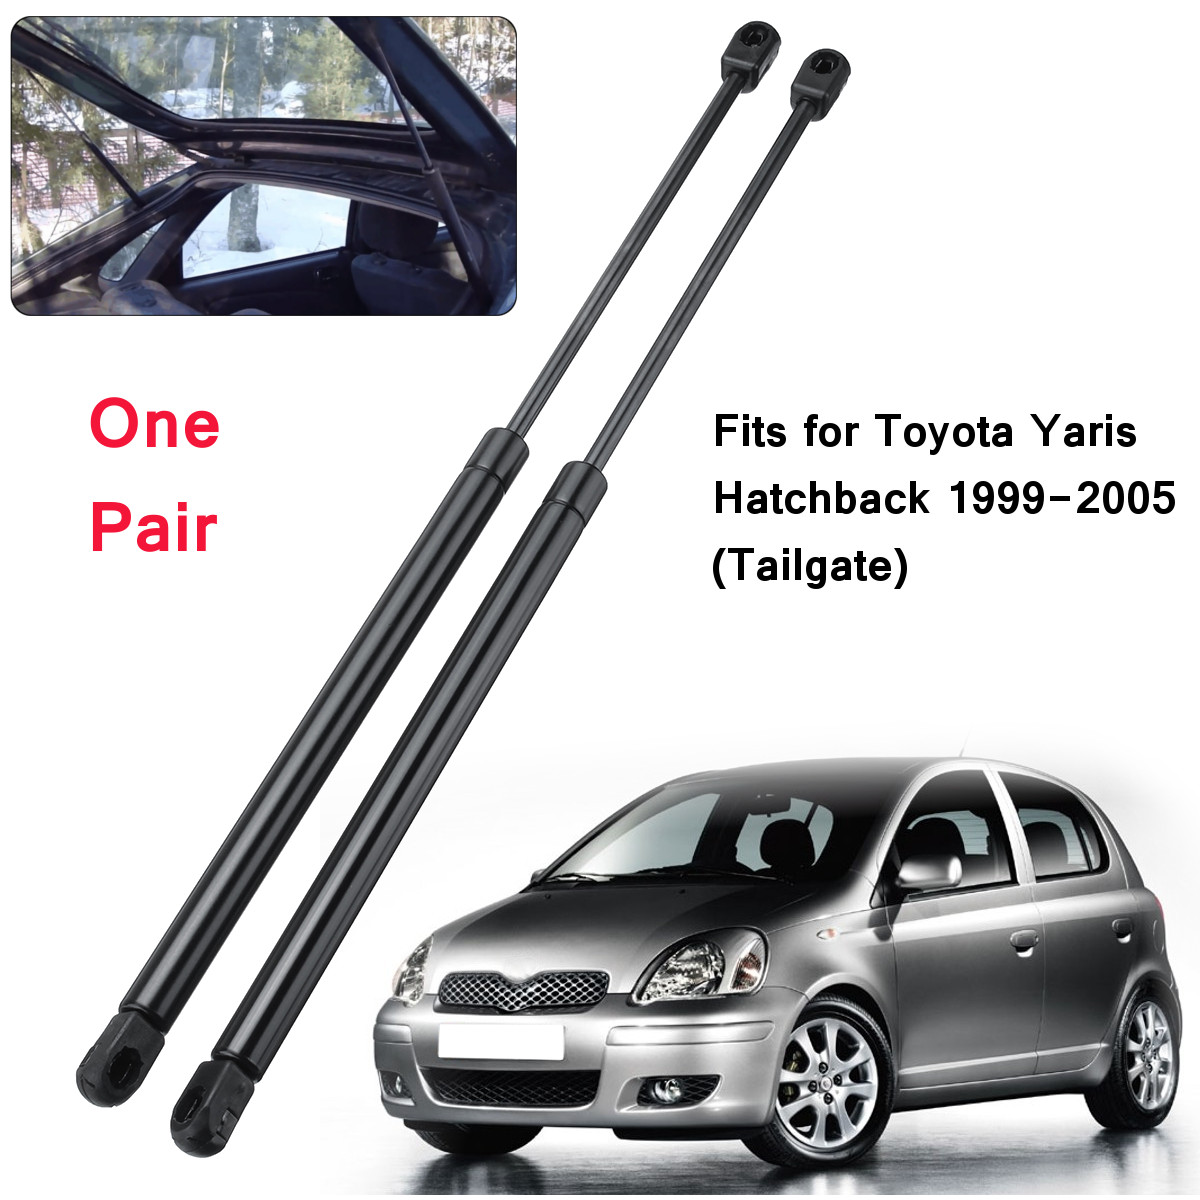 ECCPP Lift Support Rear Liftgate Replacement Struts Gas Springs Fit for 2007-2012 Hyundai Santa Fe Set of 2